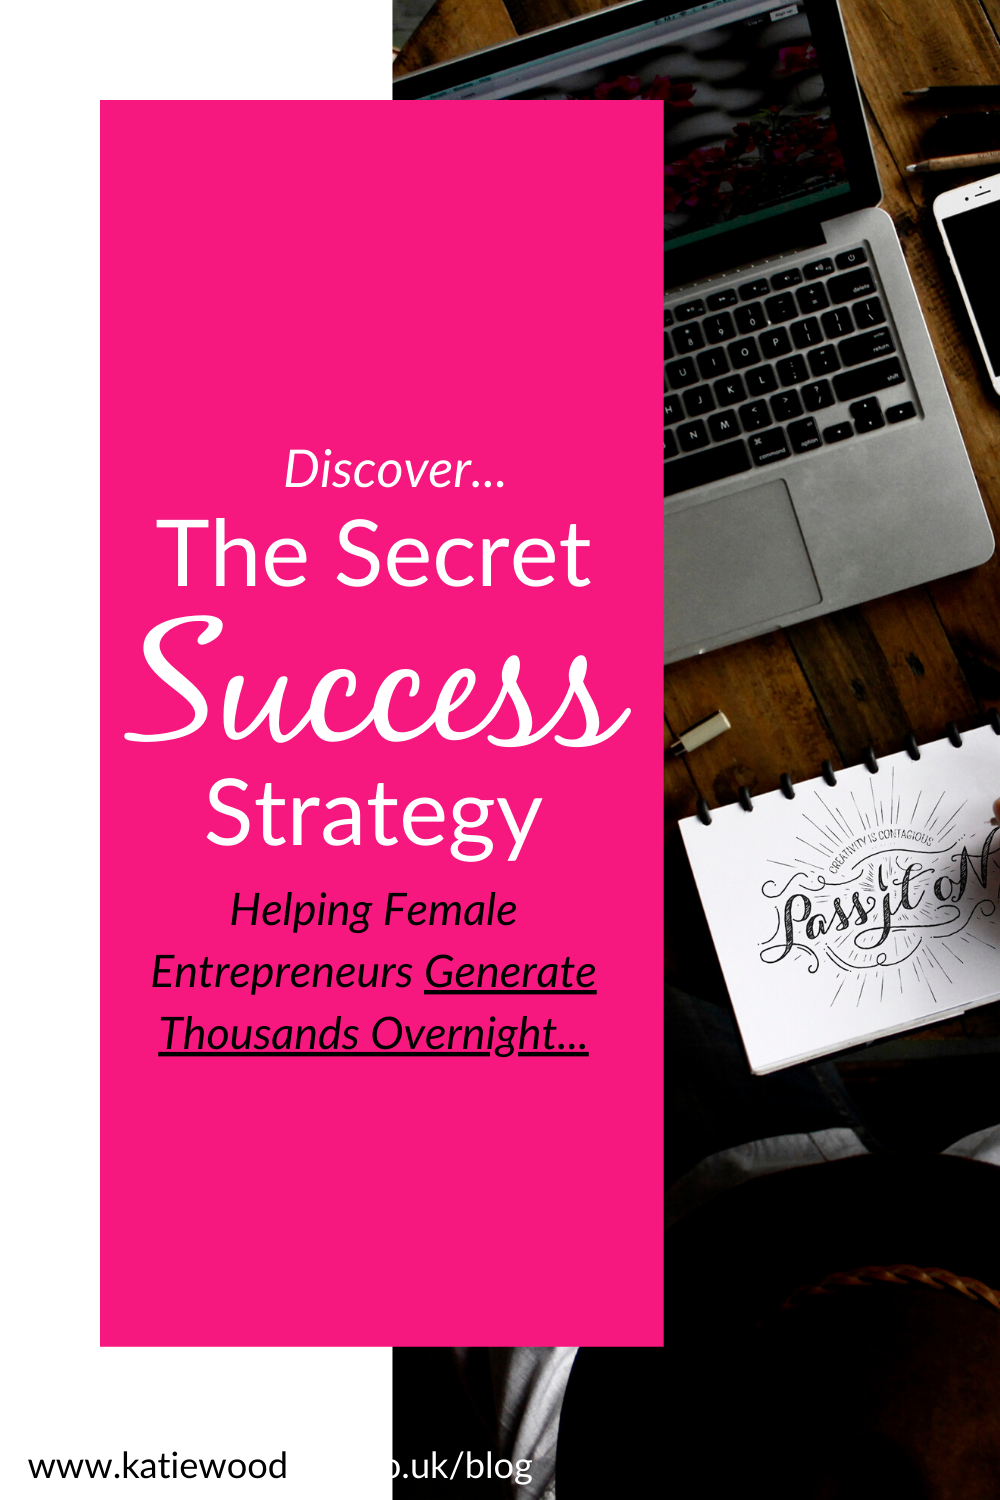 The Secret SUCCESS Strategy Helping Female Entrepreneurs Generate Thousands Overnight